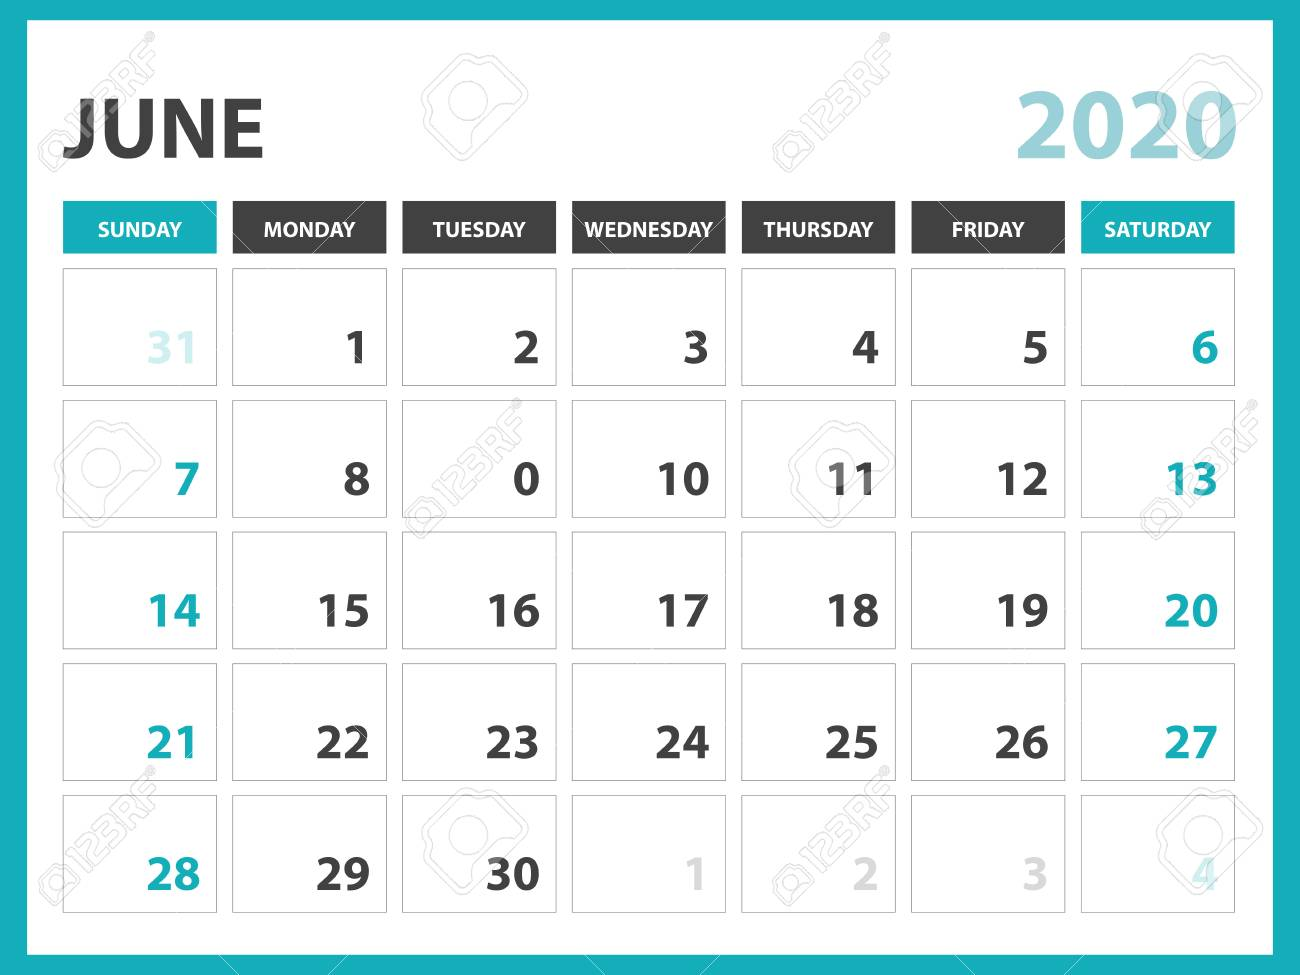 Calendar June 2020.Desk Calendar Layout Size 8 X 6 Inch June 2020 Calendar Template